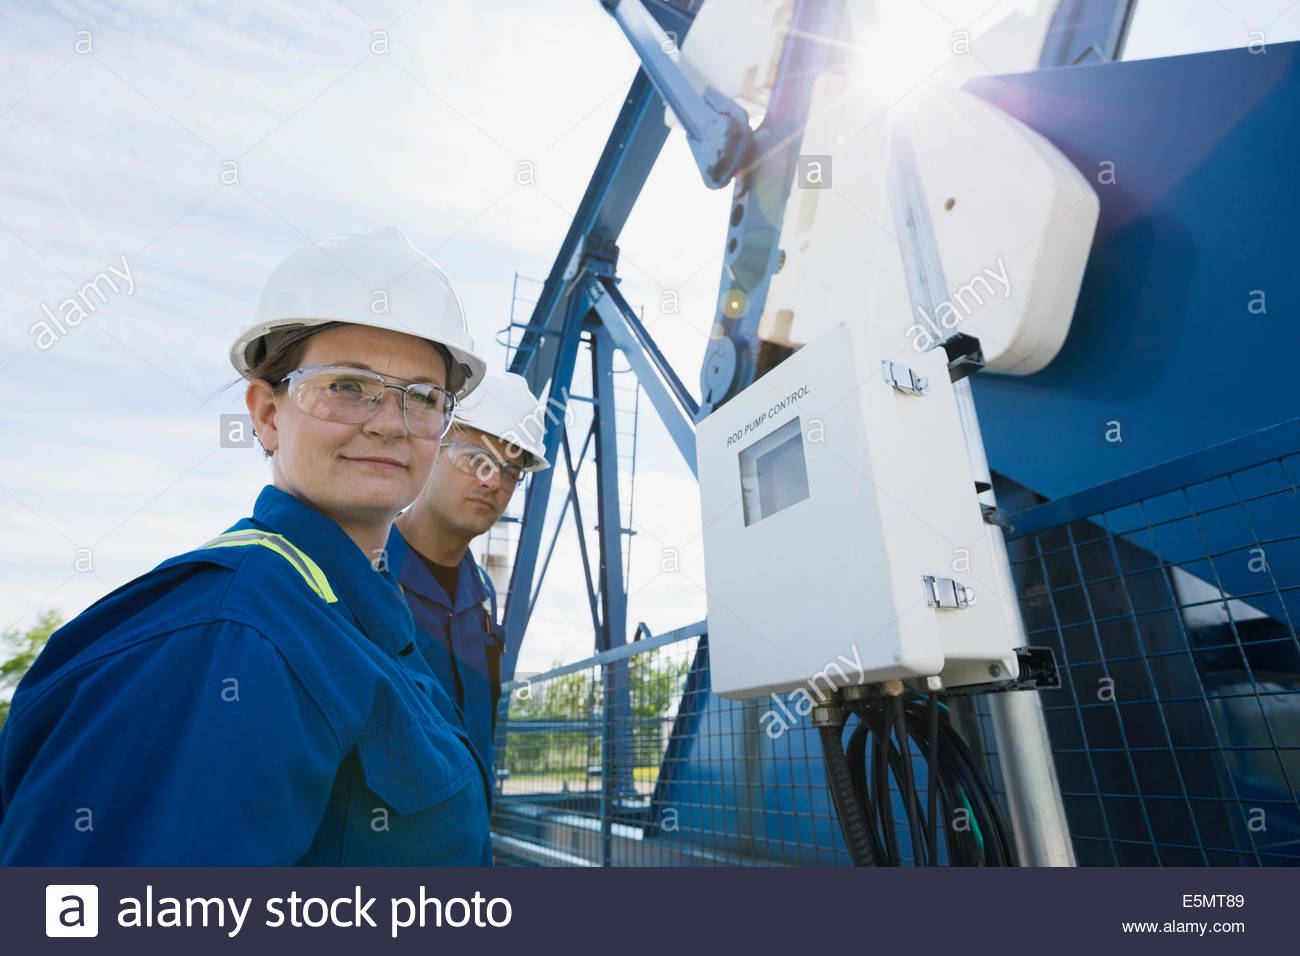 Workers at oil well - Stock Image